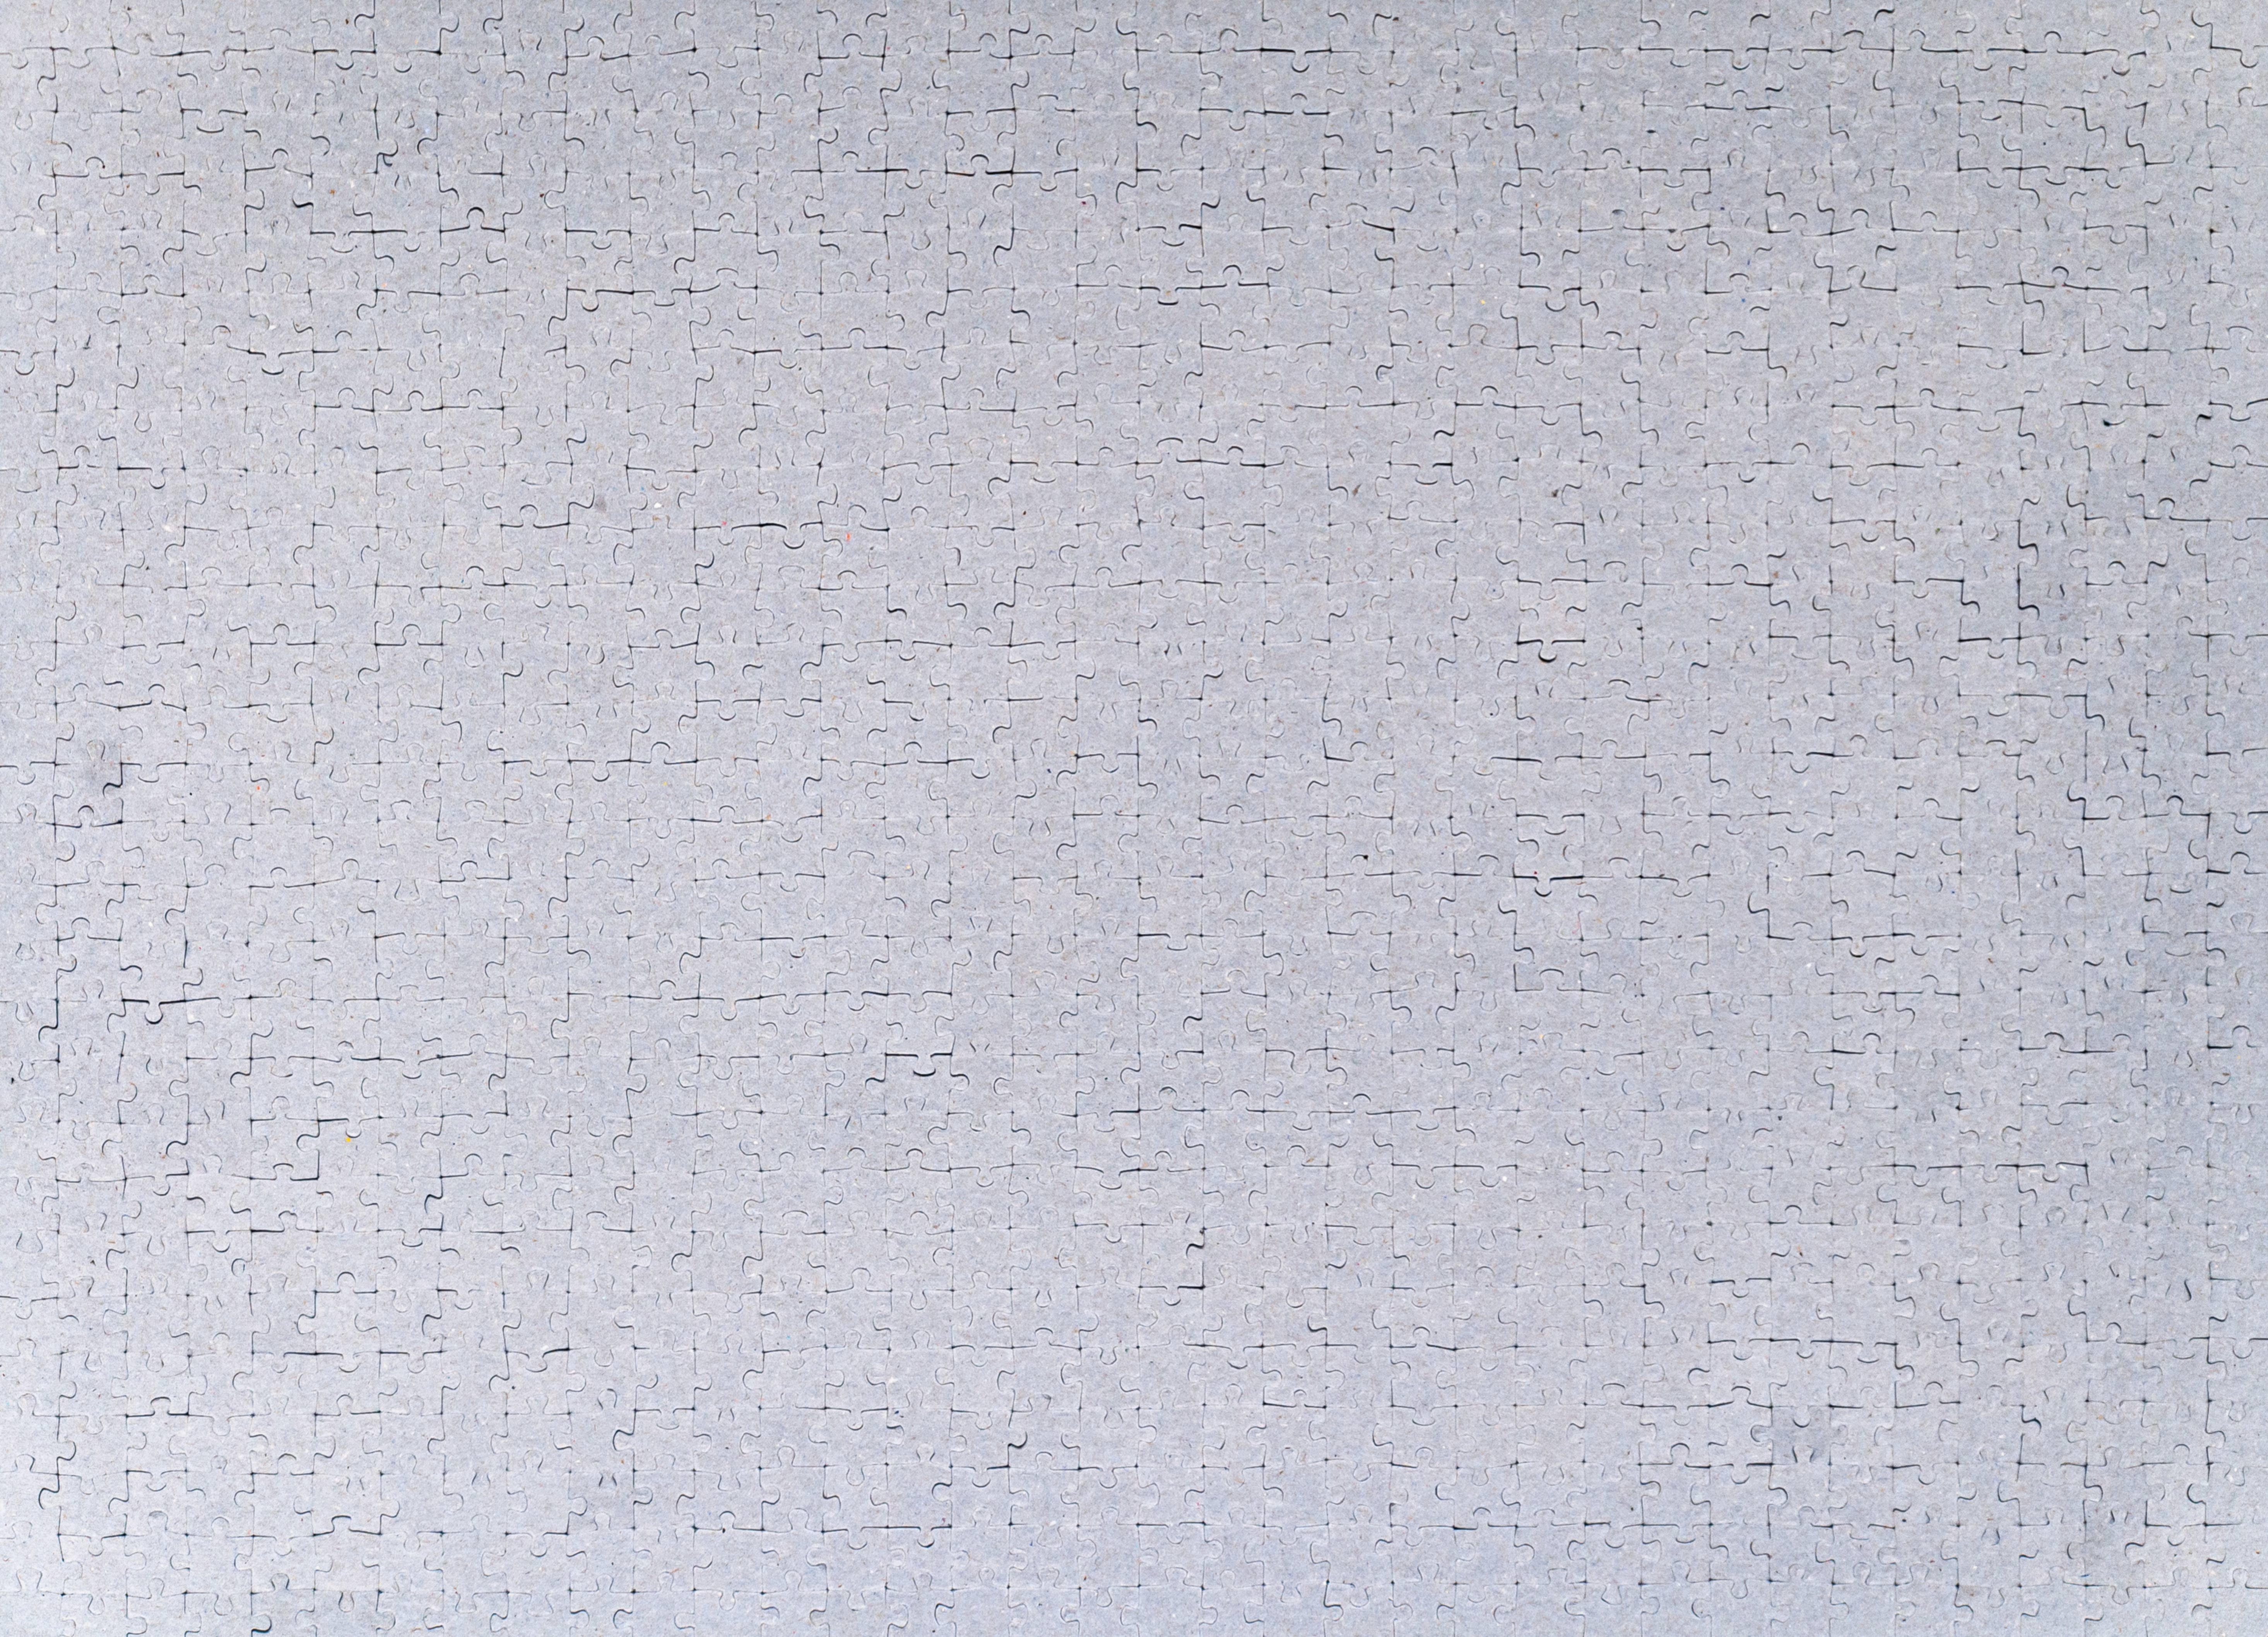 Complete puzzle blank backside cardboard cutout pattern